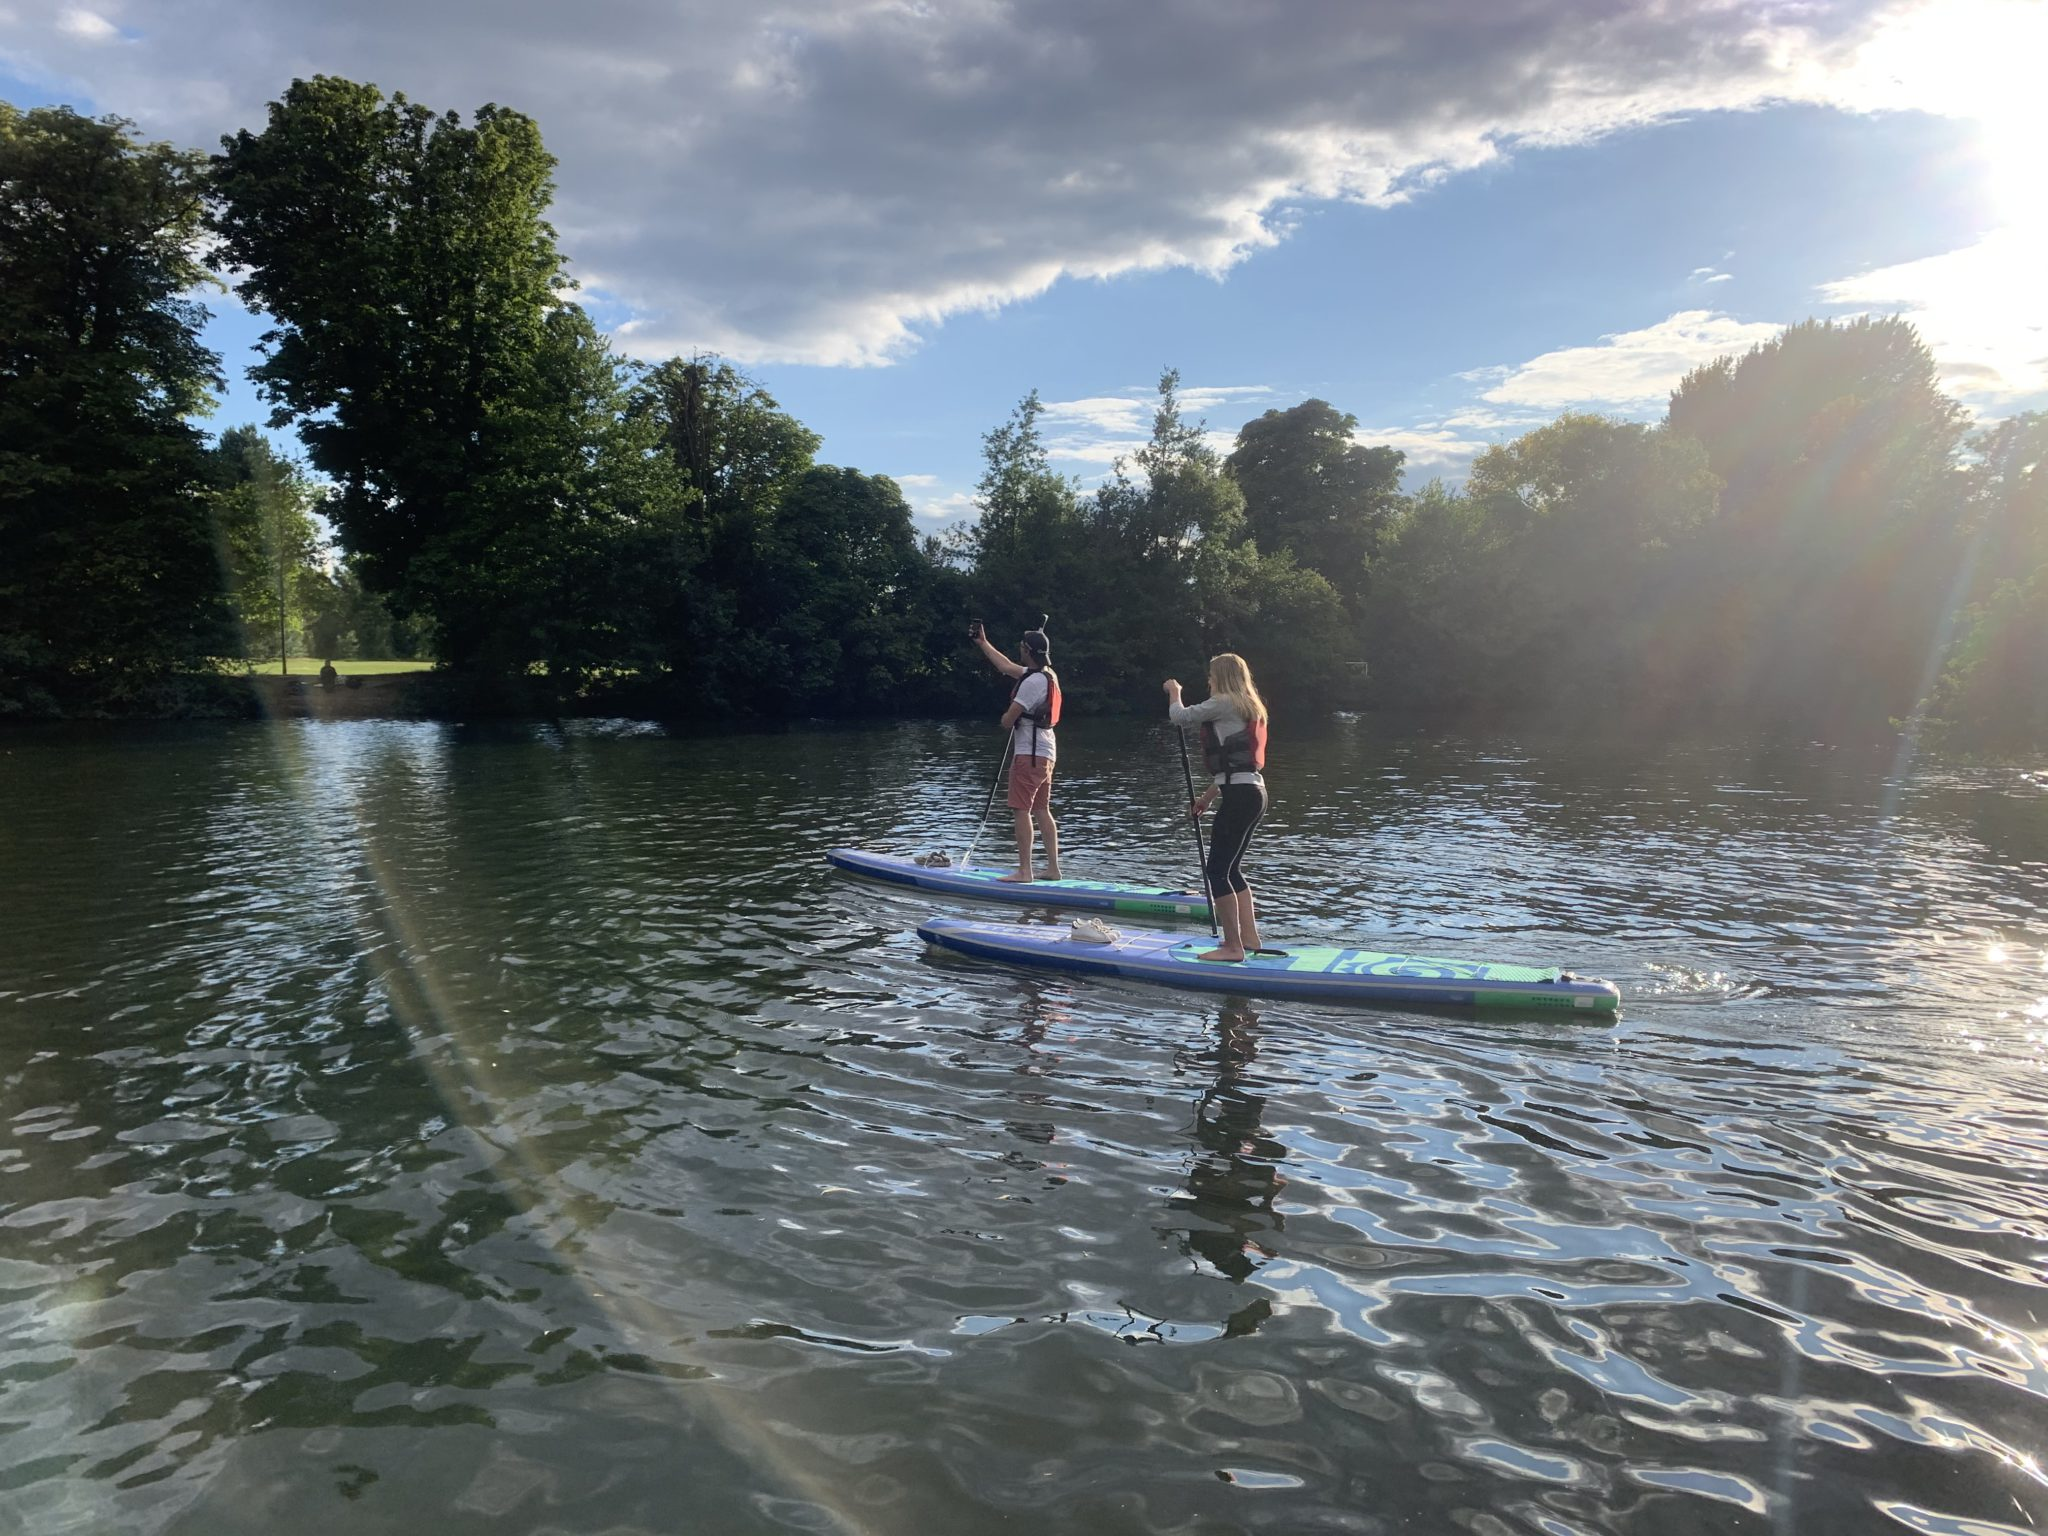 Private London paddleboard experience on the Thames: Richmond SUP